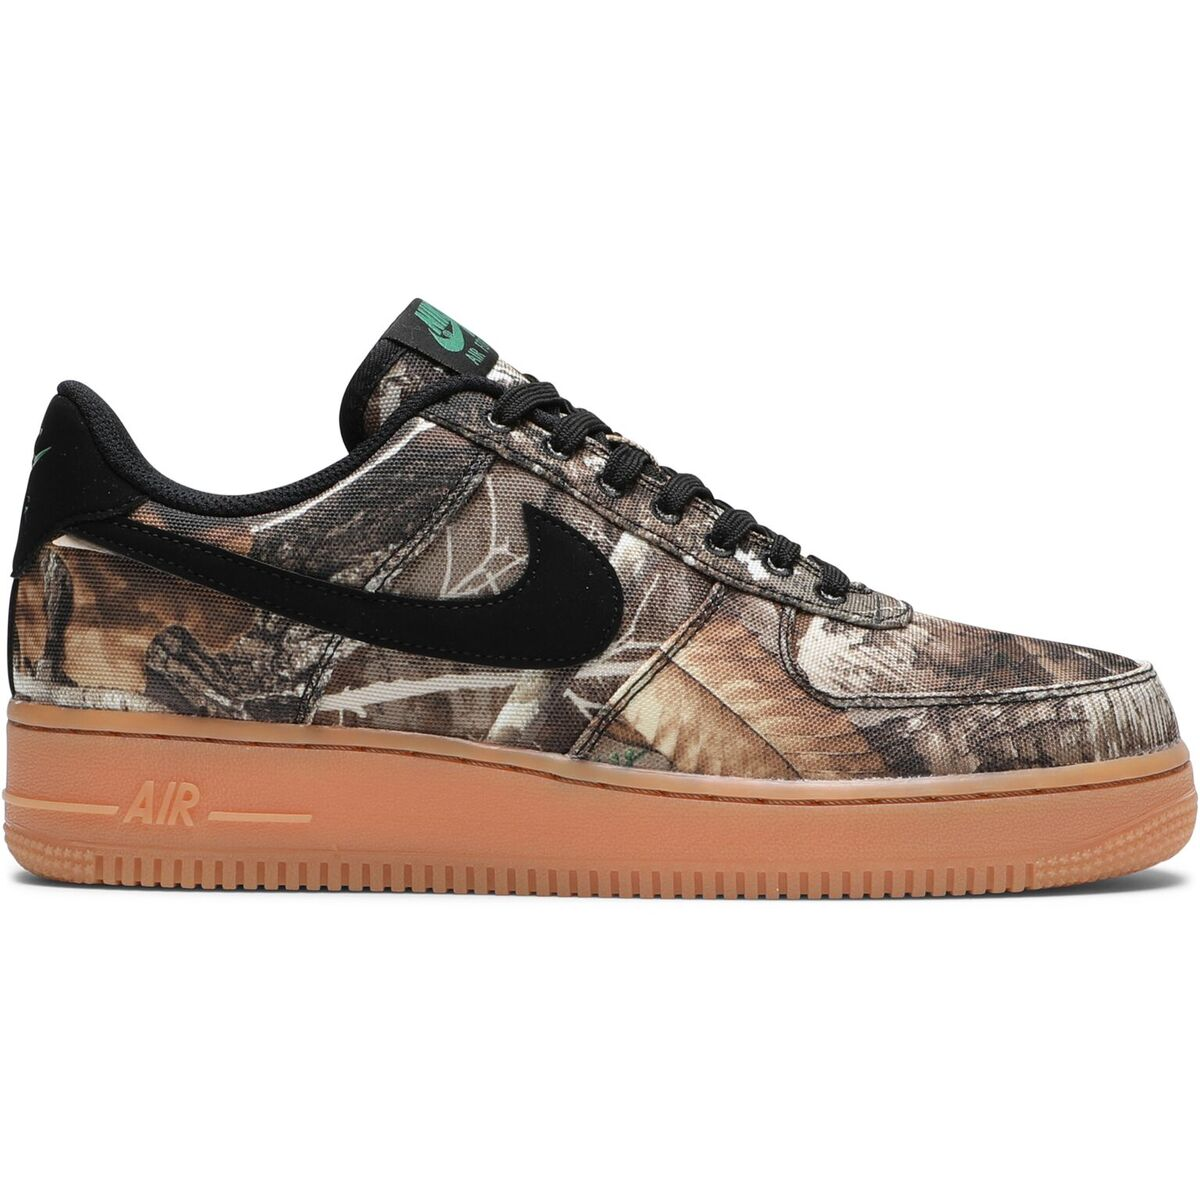 4bf689c23466 Nike Air Force 1  07 LV8 3. BLACK BLACK-ALOE VERDE-GUM MED BROWN  AO2441-001. Retail   100